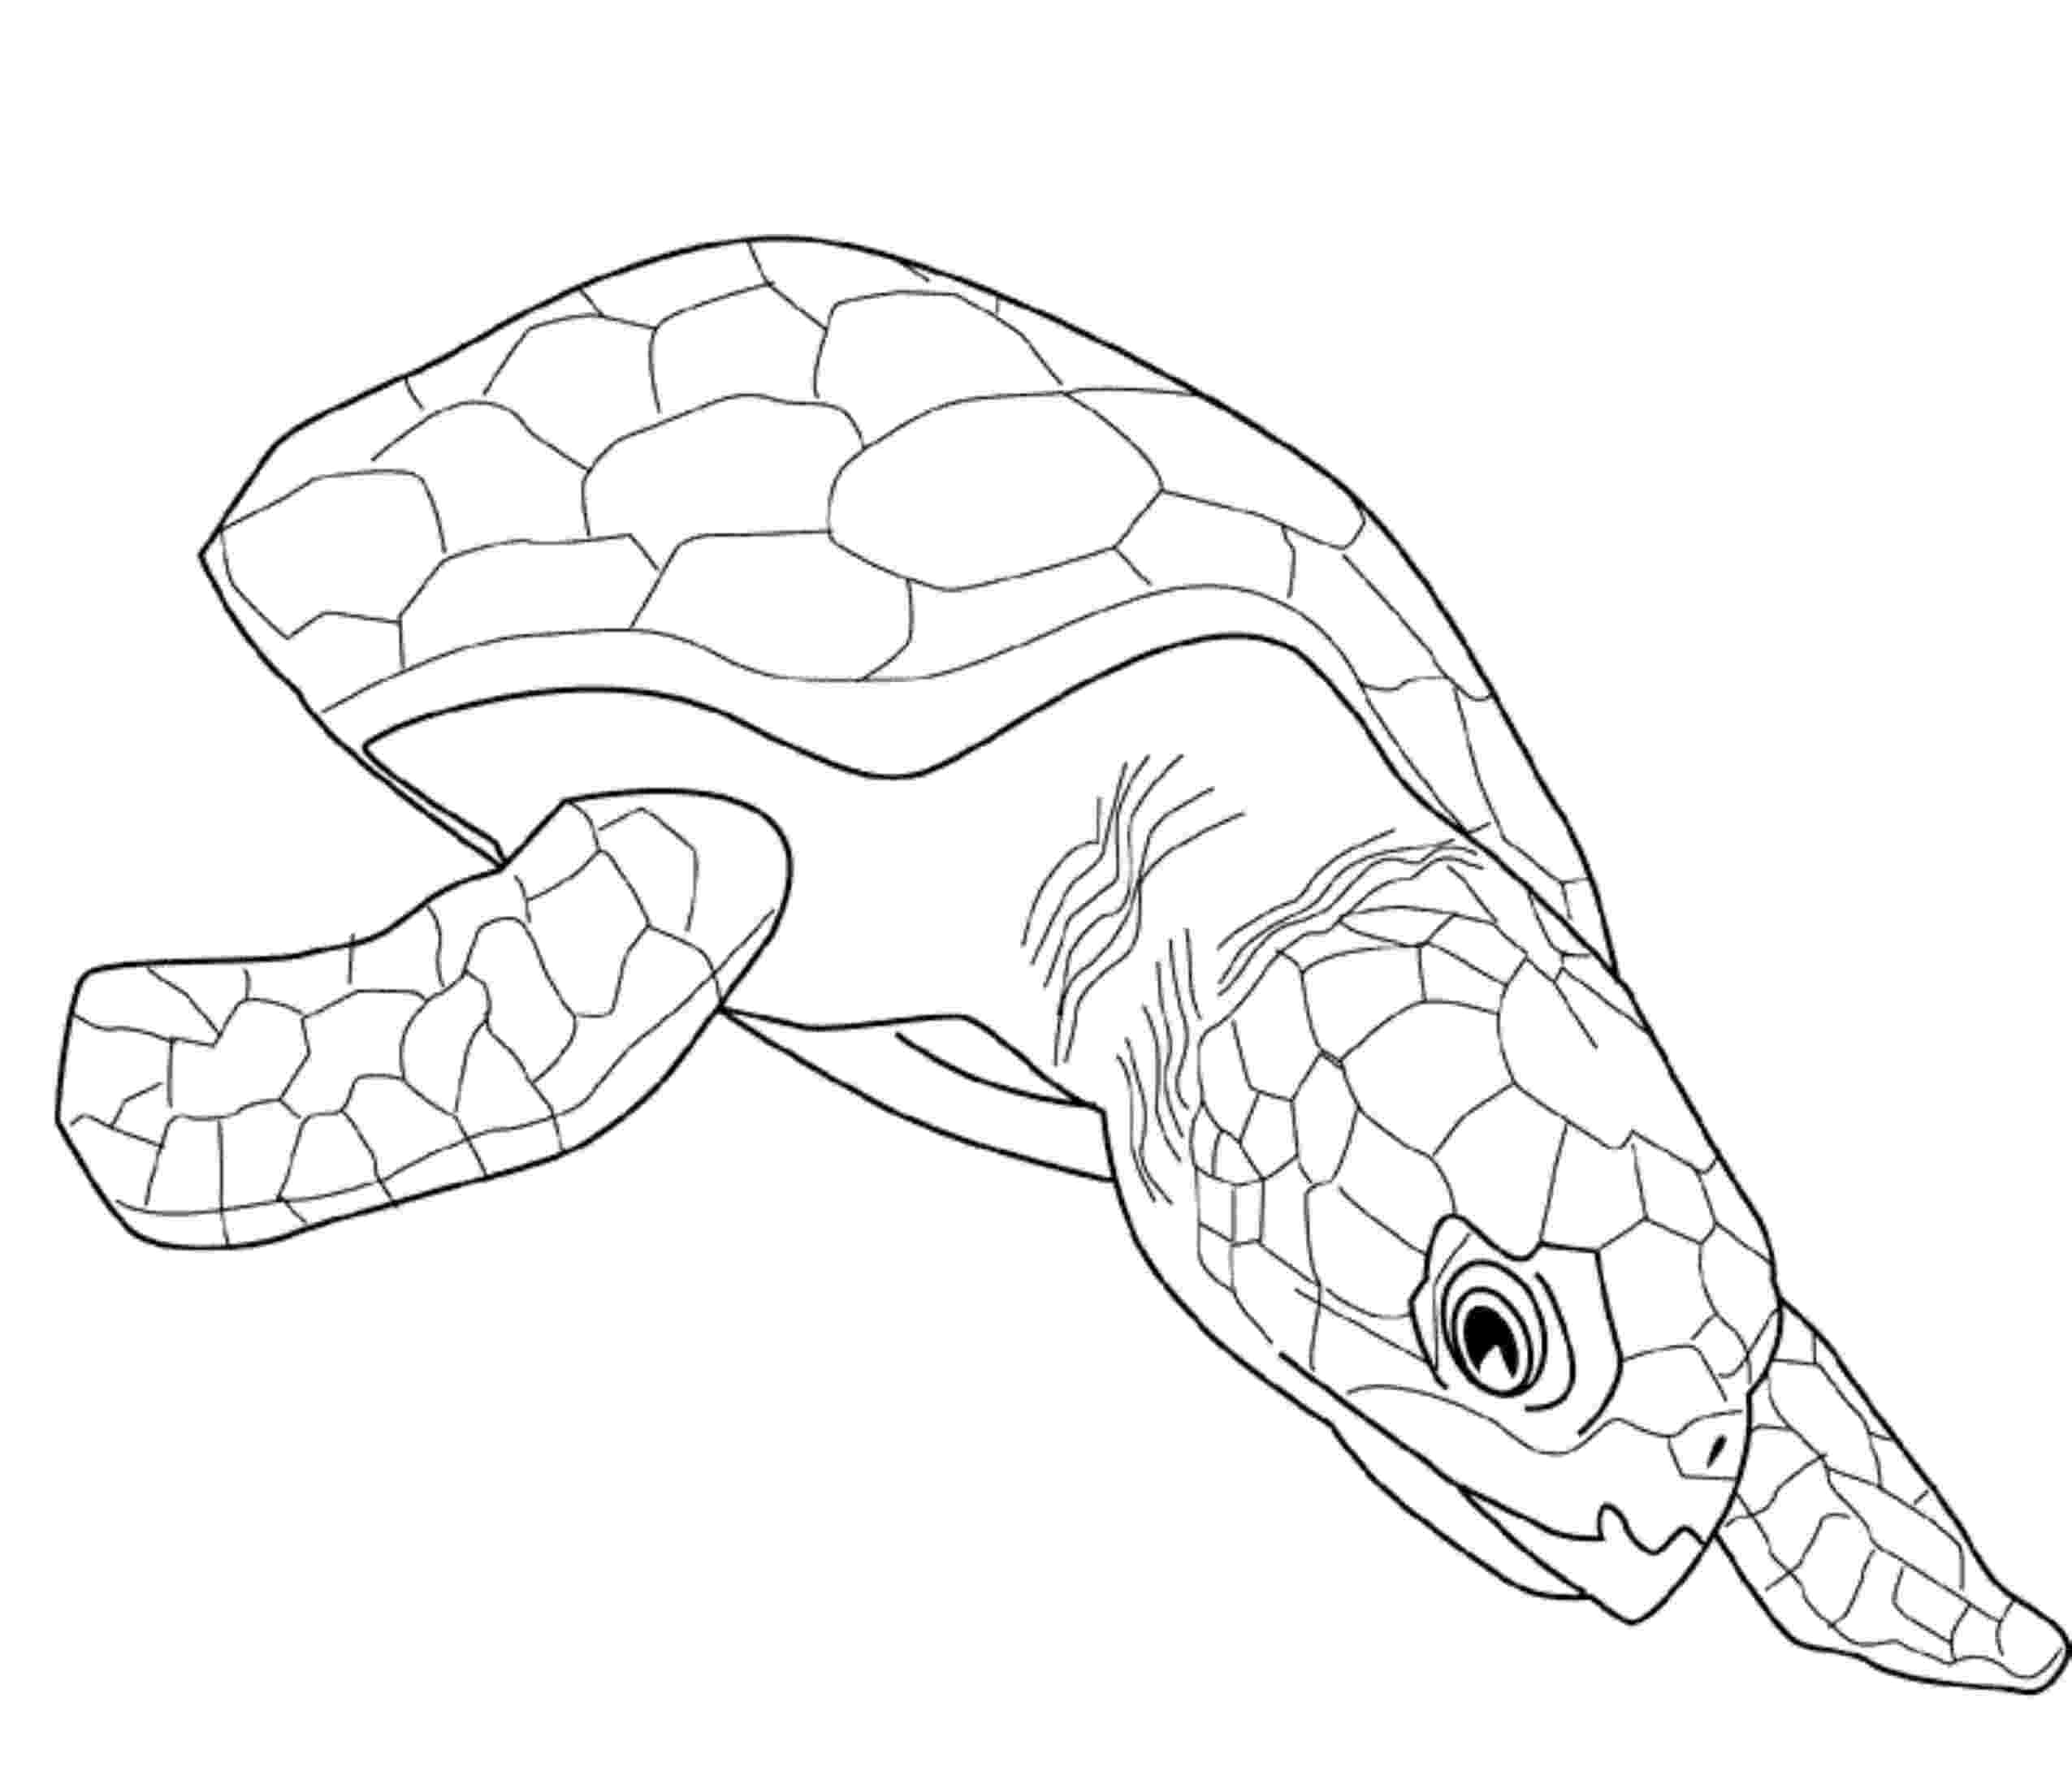 turtle coloring book turtles free to color for kids turtles kids coloring pages coloring book turtle